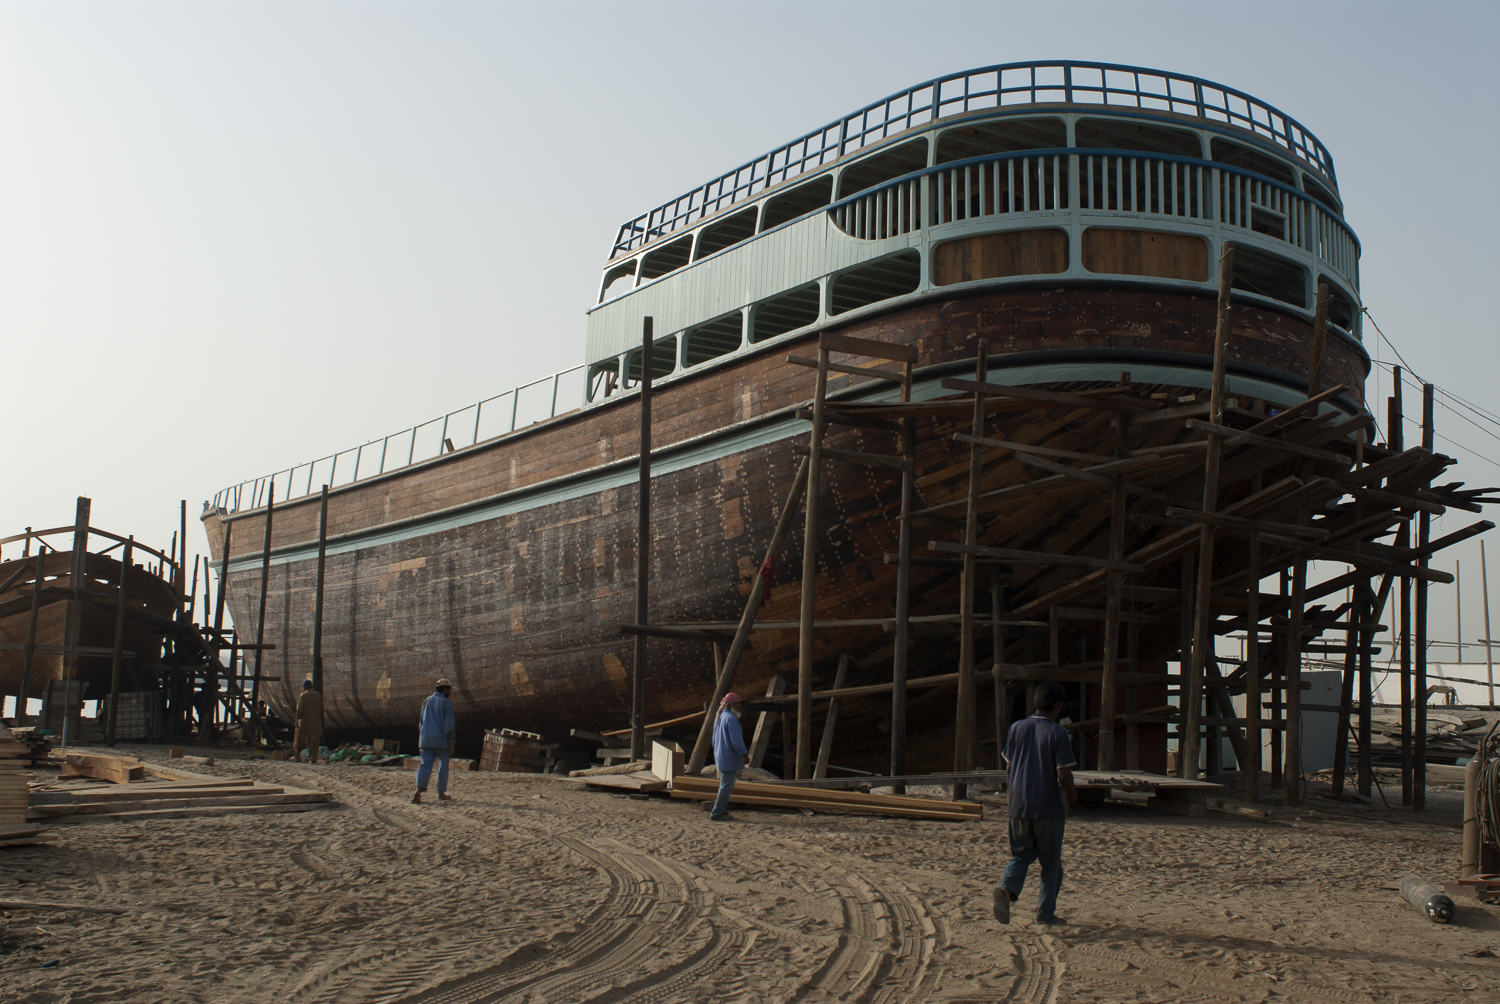 jo-kearney-dhow-building-dubai-migrant-worker-travel-photography.jpg.jpg